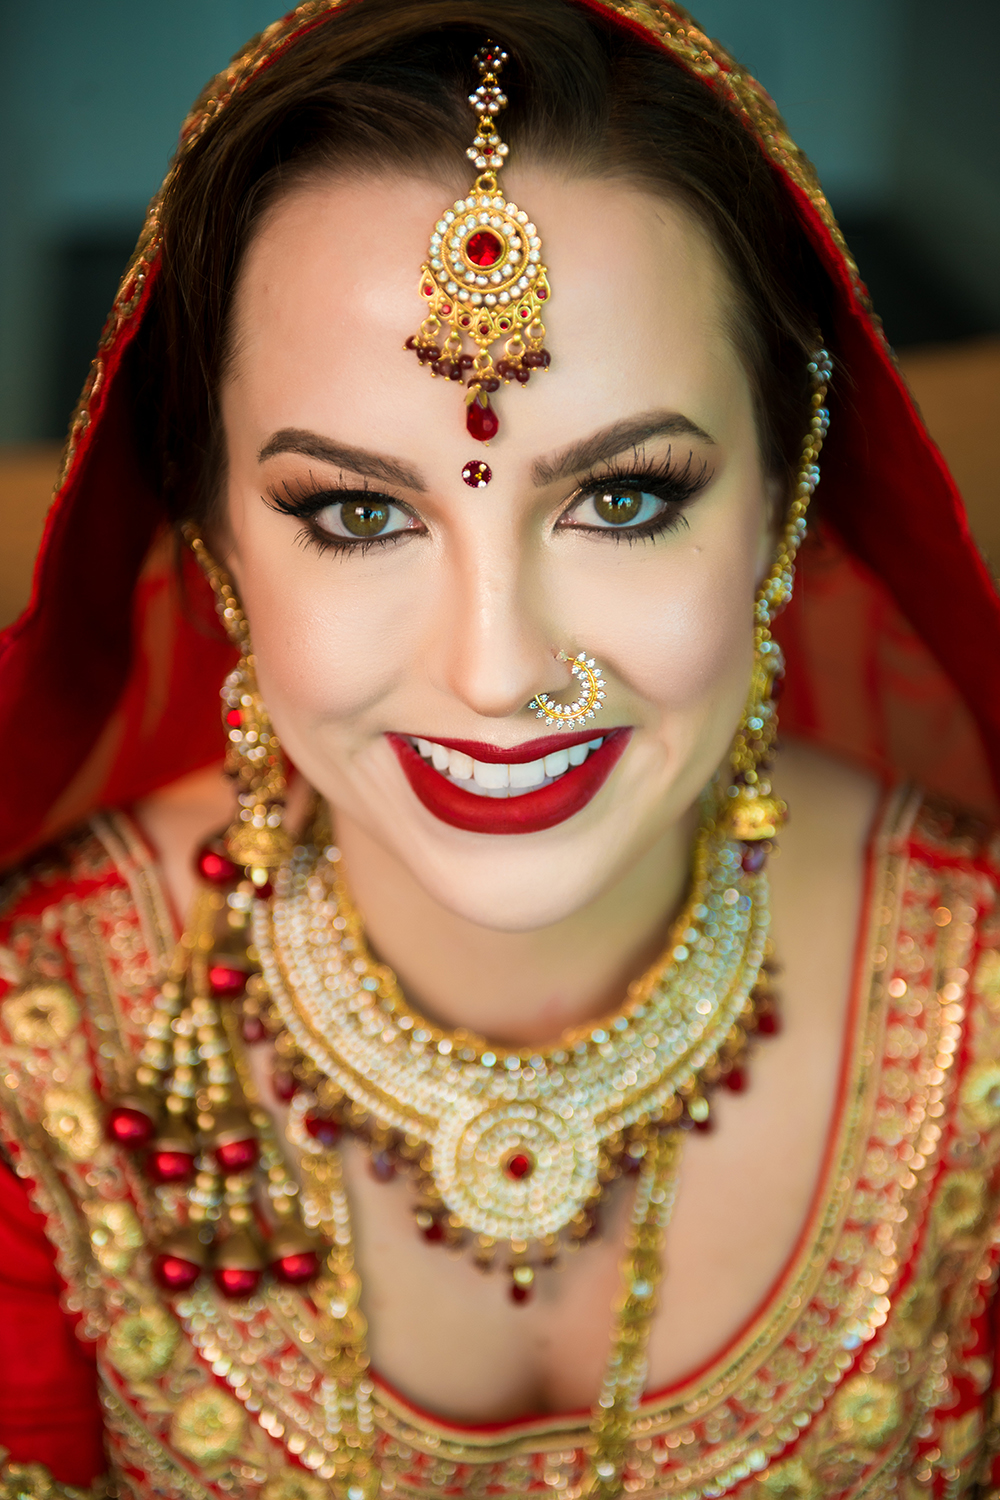 wedding hair and makeup, south asian fusion, red lips, houston wedding, bridal beauty